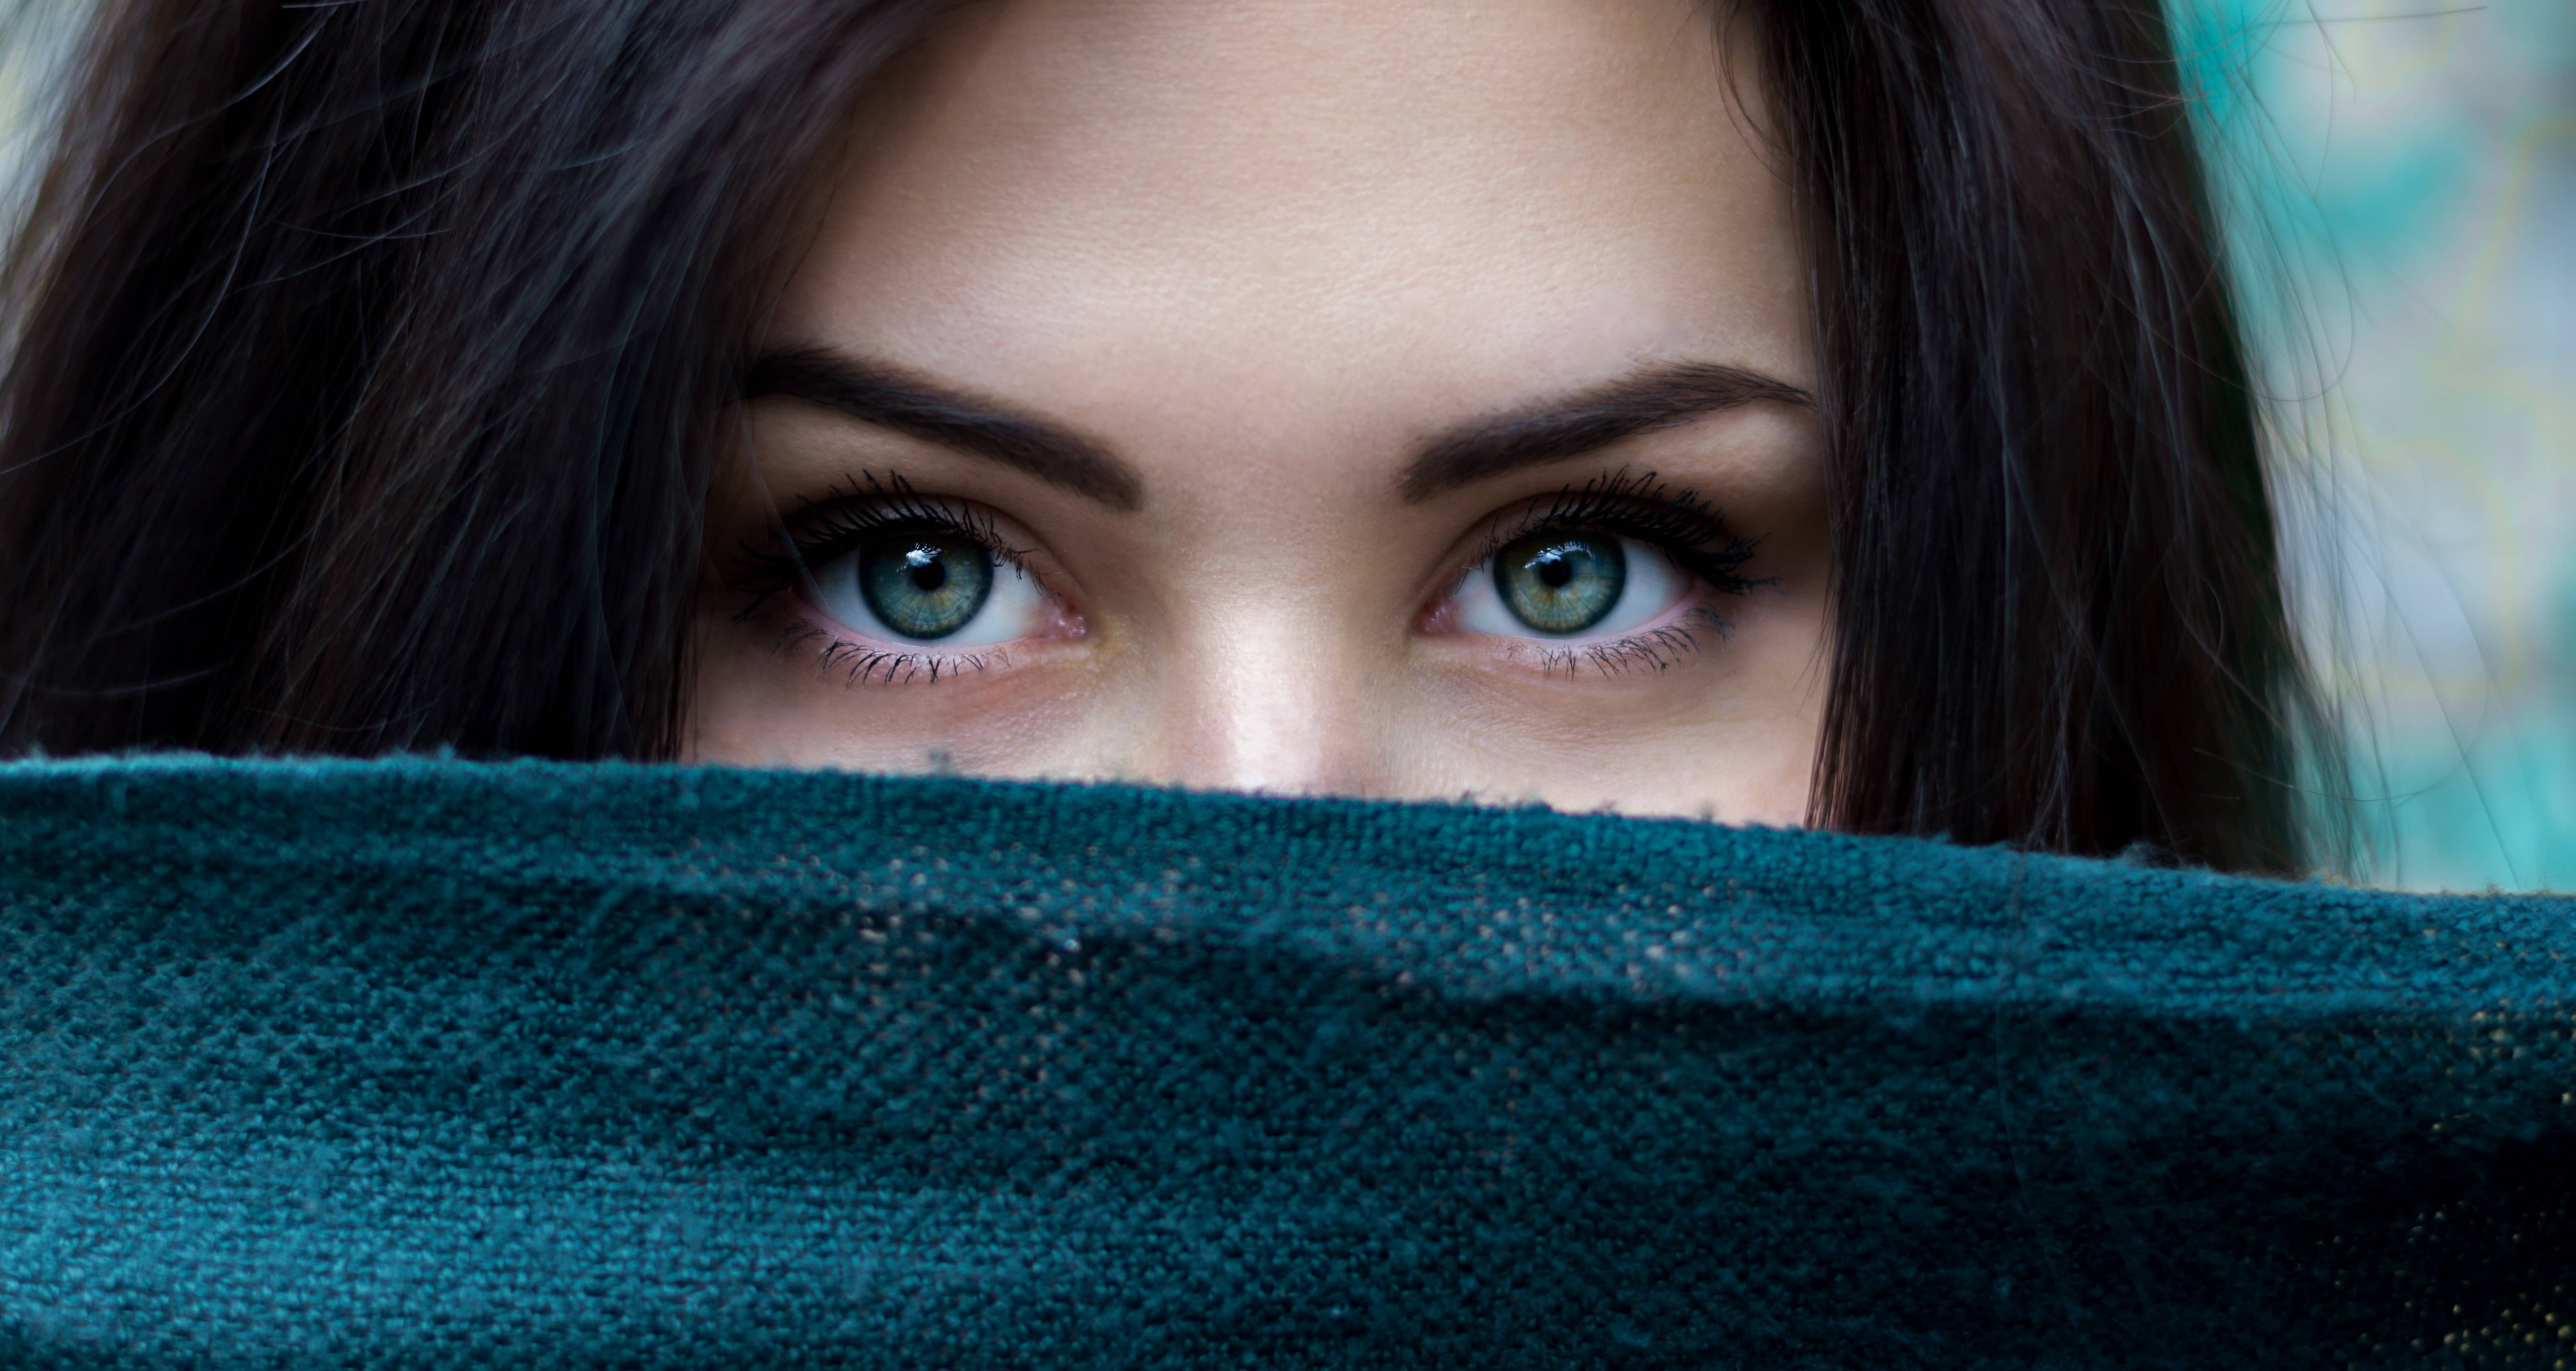 woman with blue eyes with a blue scarf covering her nose and mouth